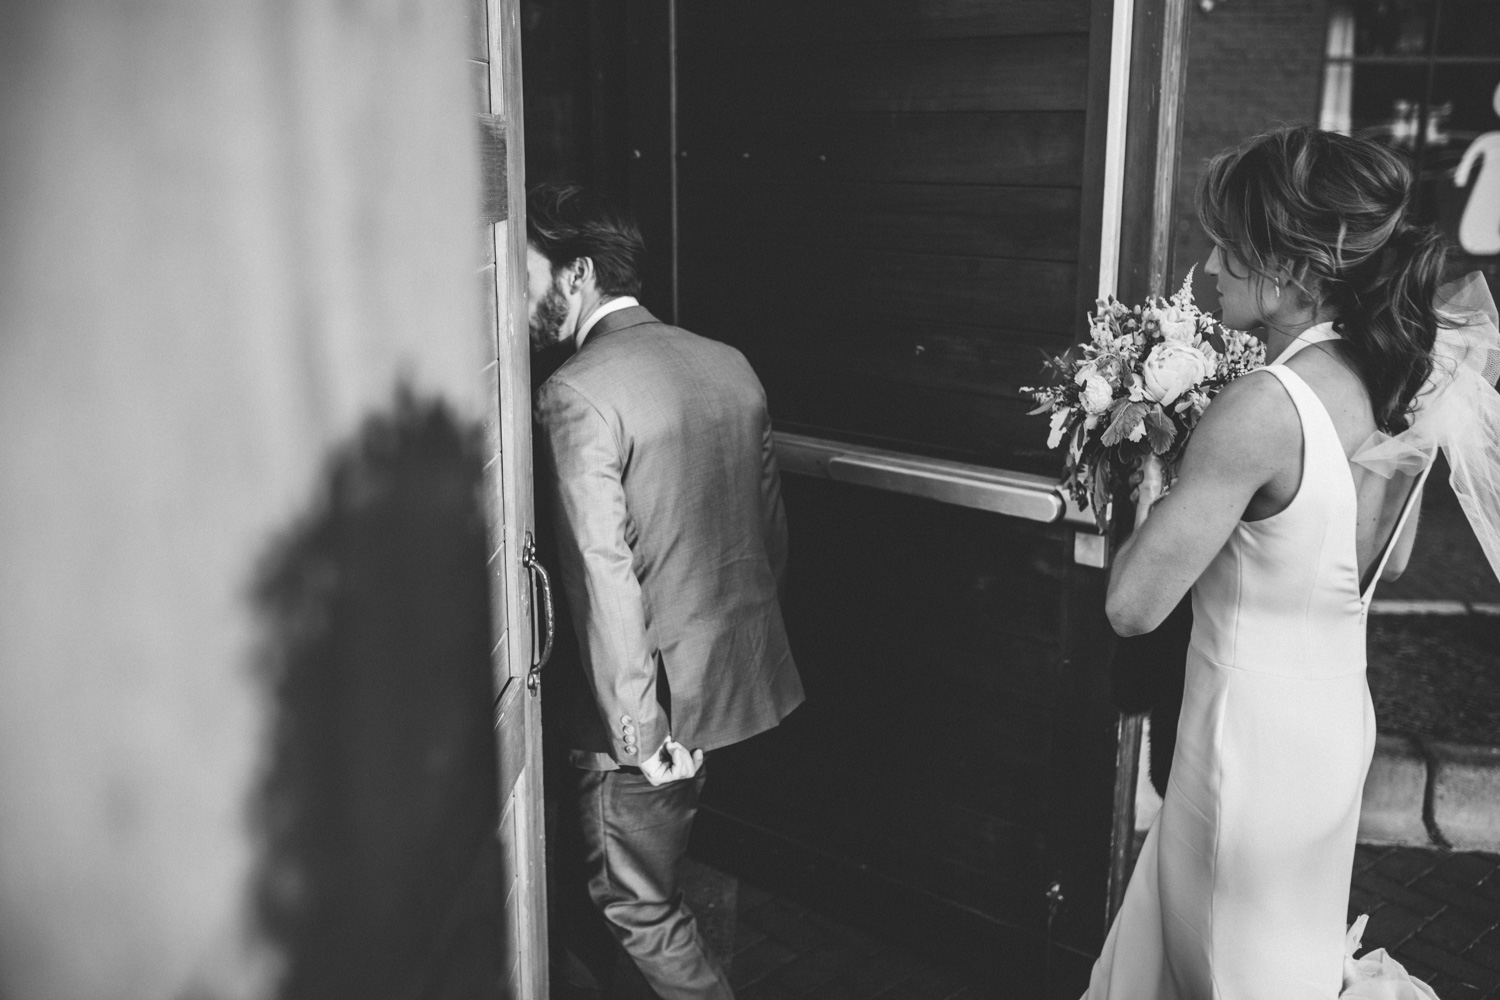 Brandon_Werth_Wedding_Gold_Medal_Park_Butcher_and_the_boar_086.jpg